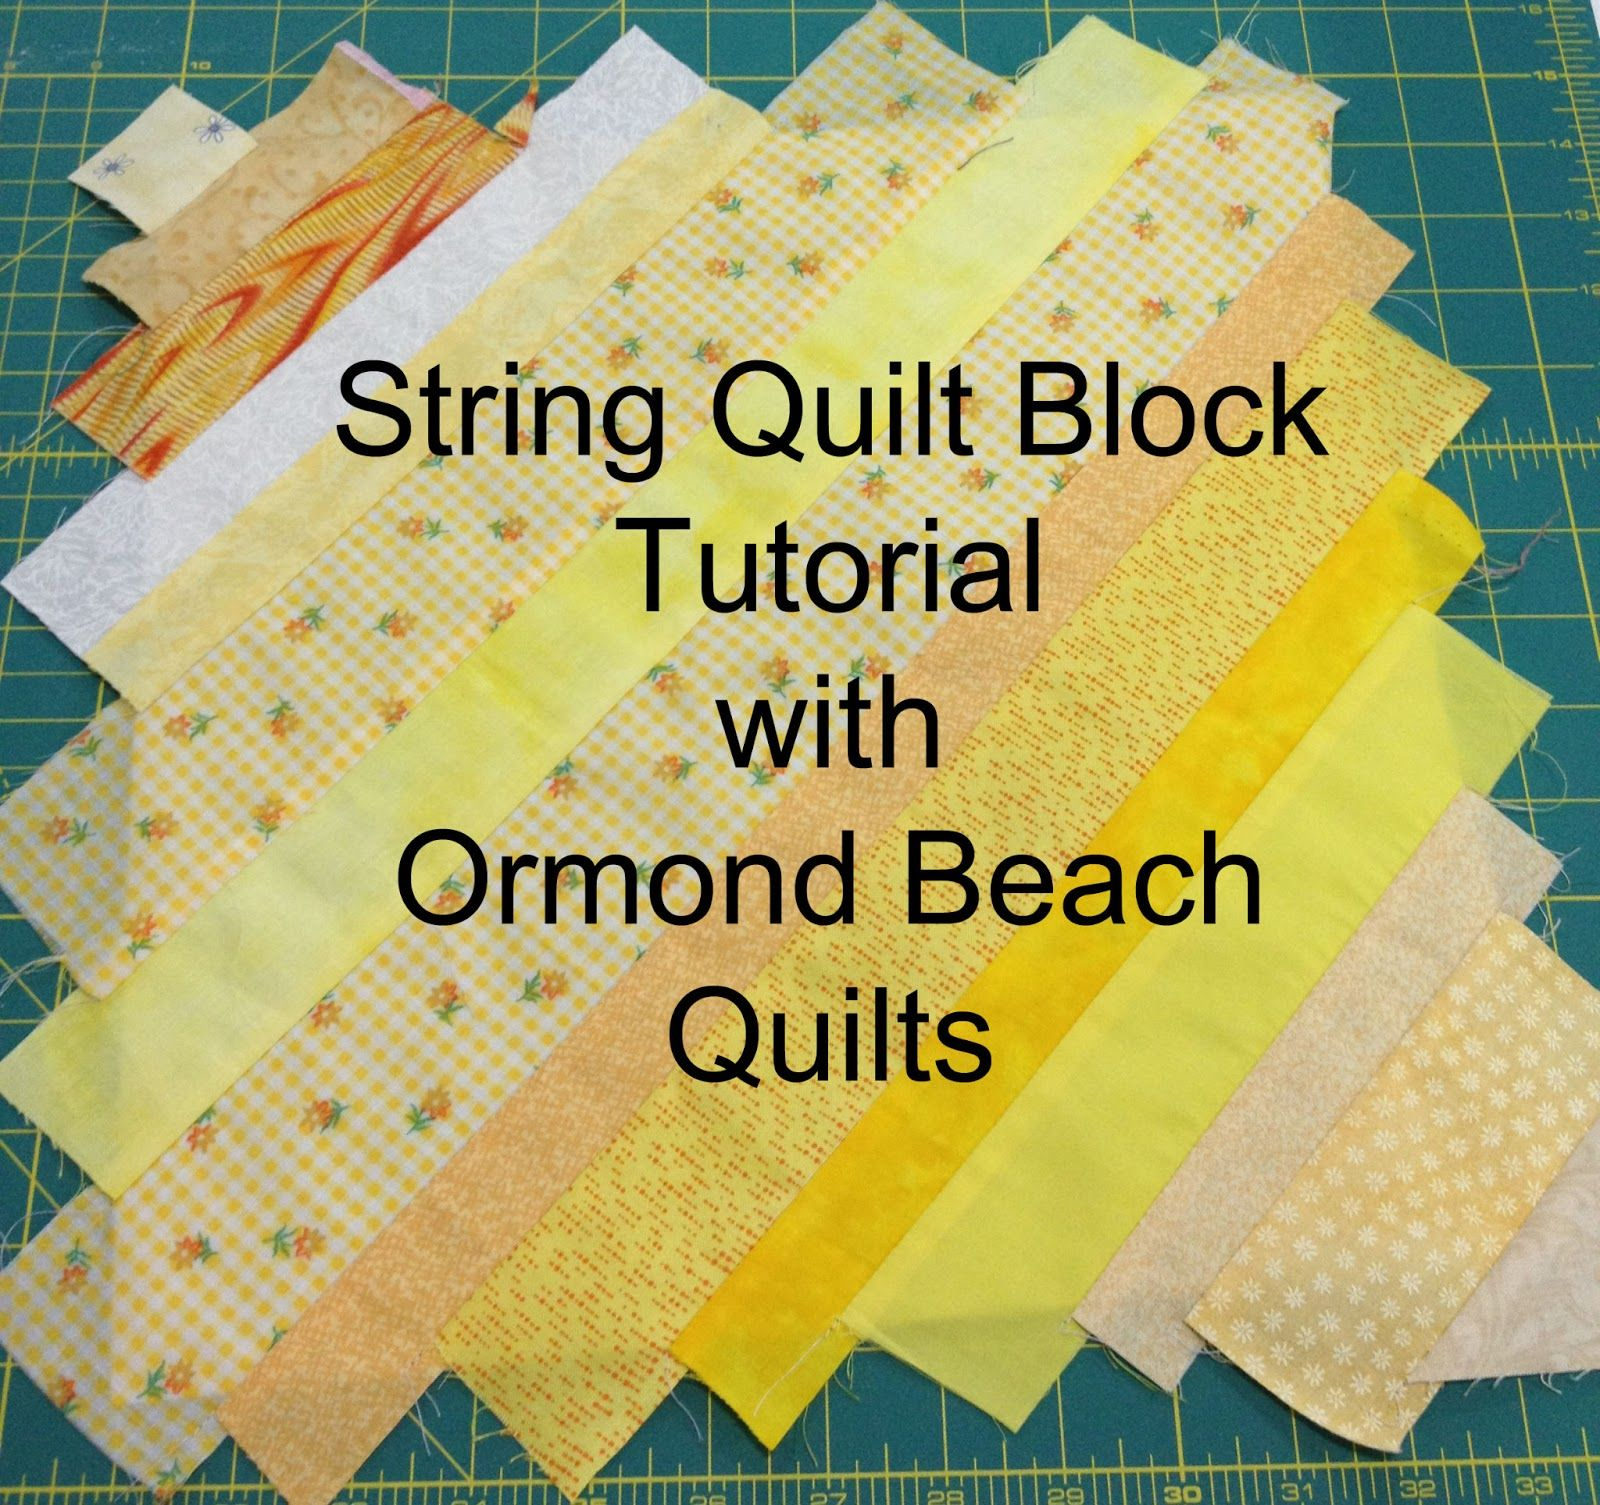 Here's Part 2 of the String Quilt Tutorial! (Part 1 is over here ... : string quilting tutorial - Adamdwight.com